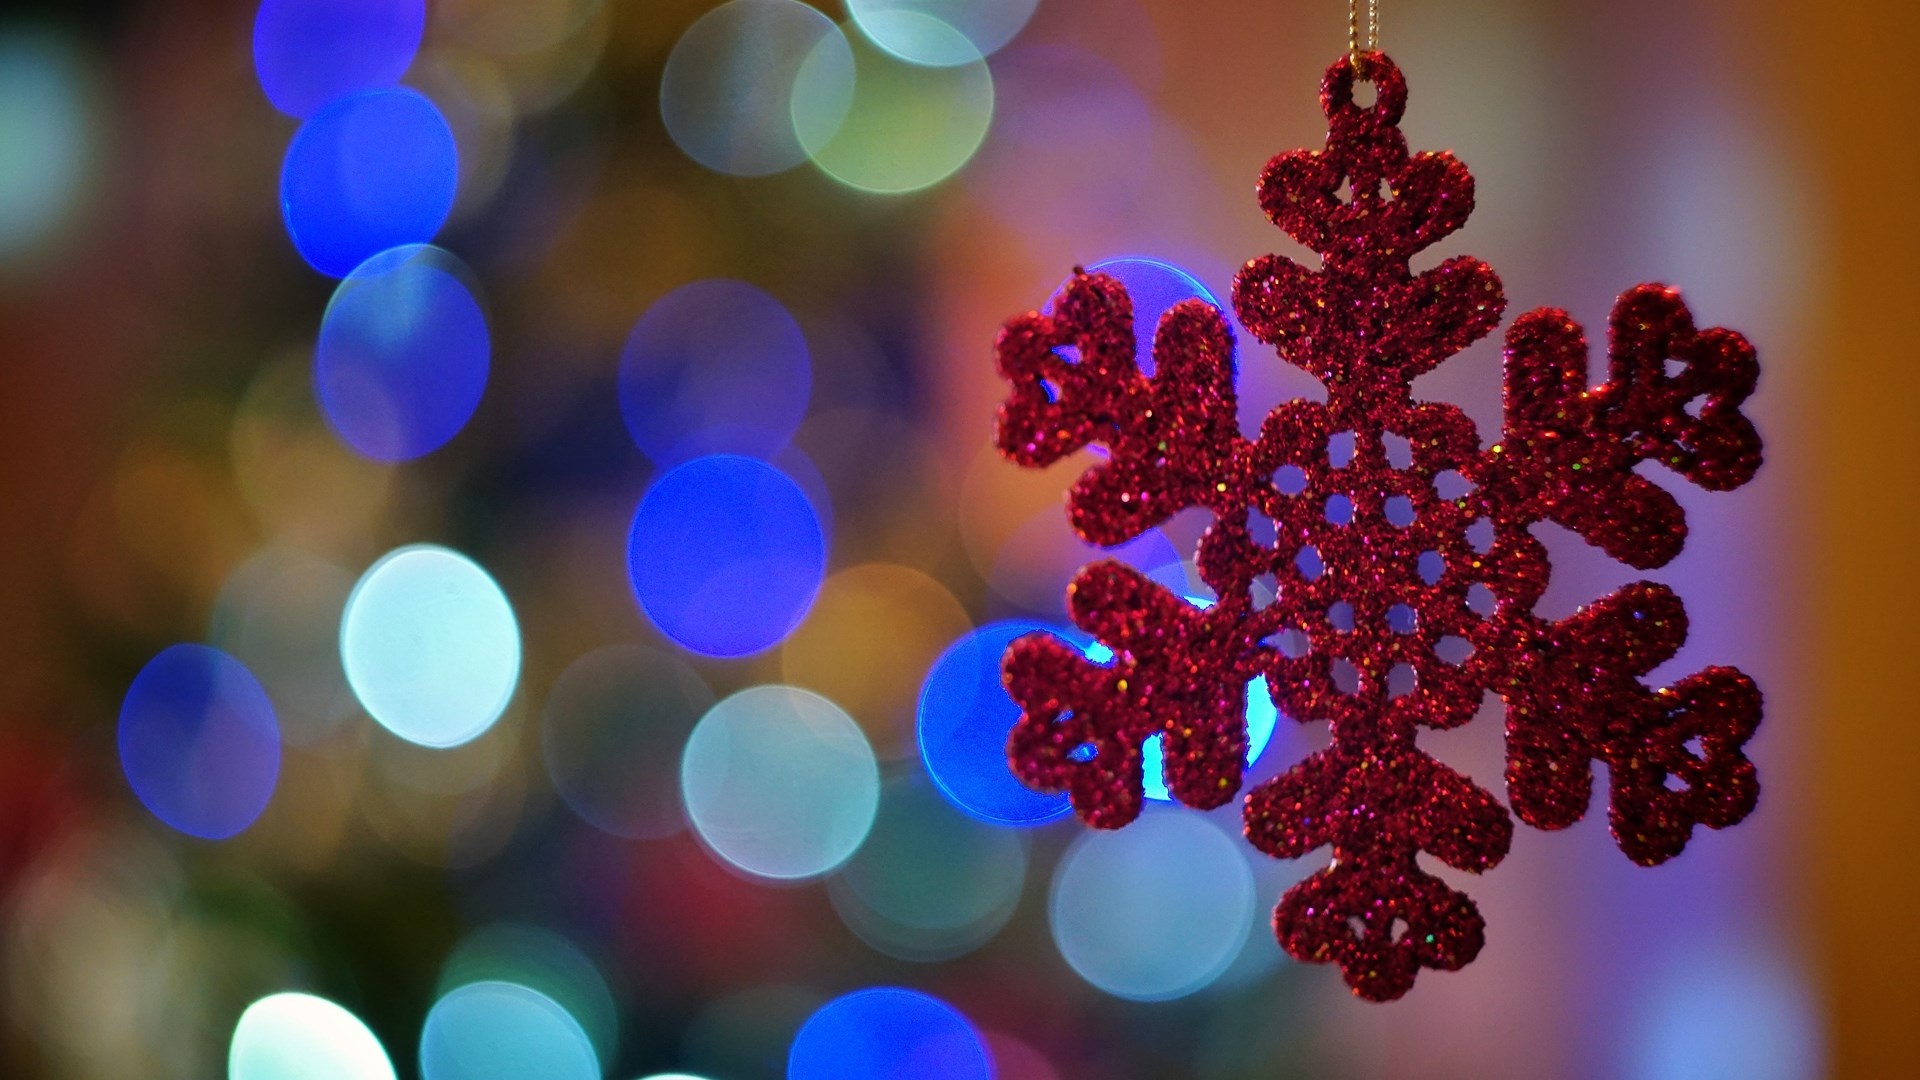 Winter Holiday Glow Theme , HD Wallpaper & Backgrounds